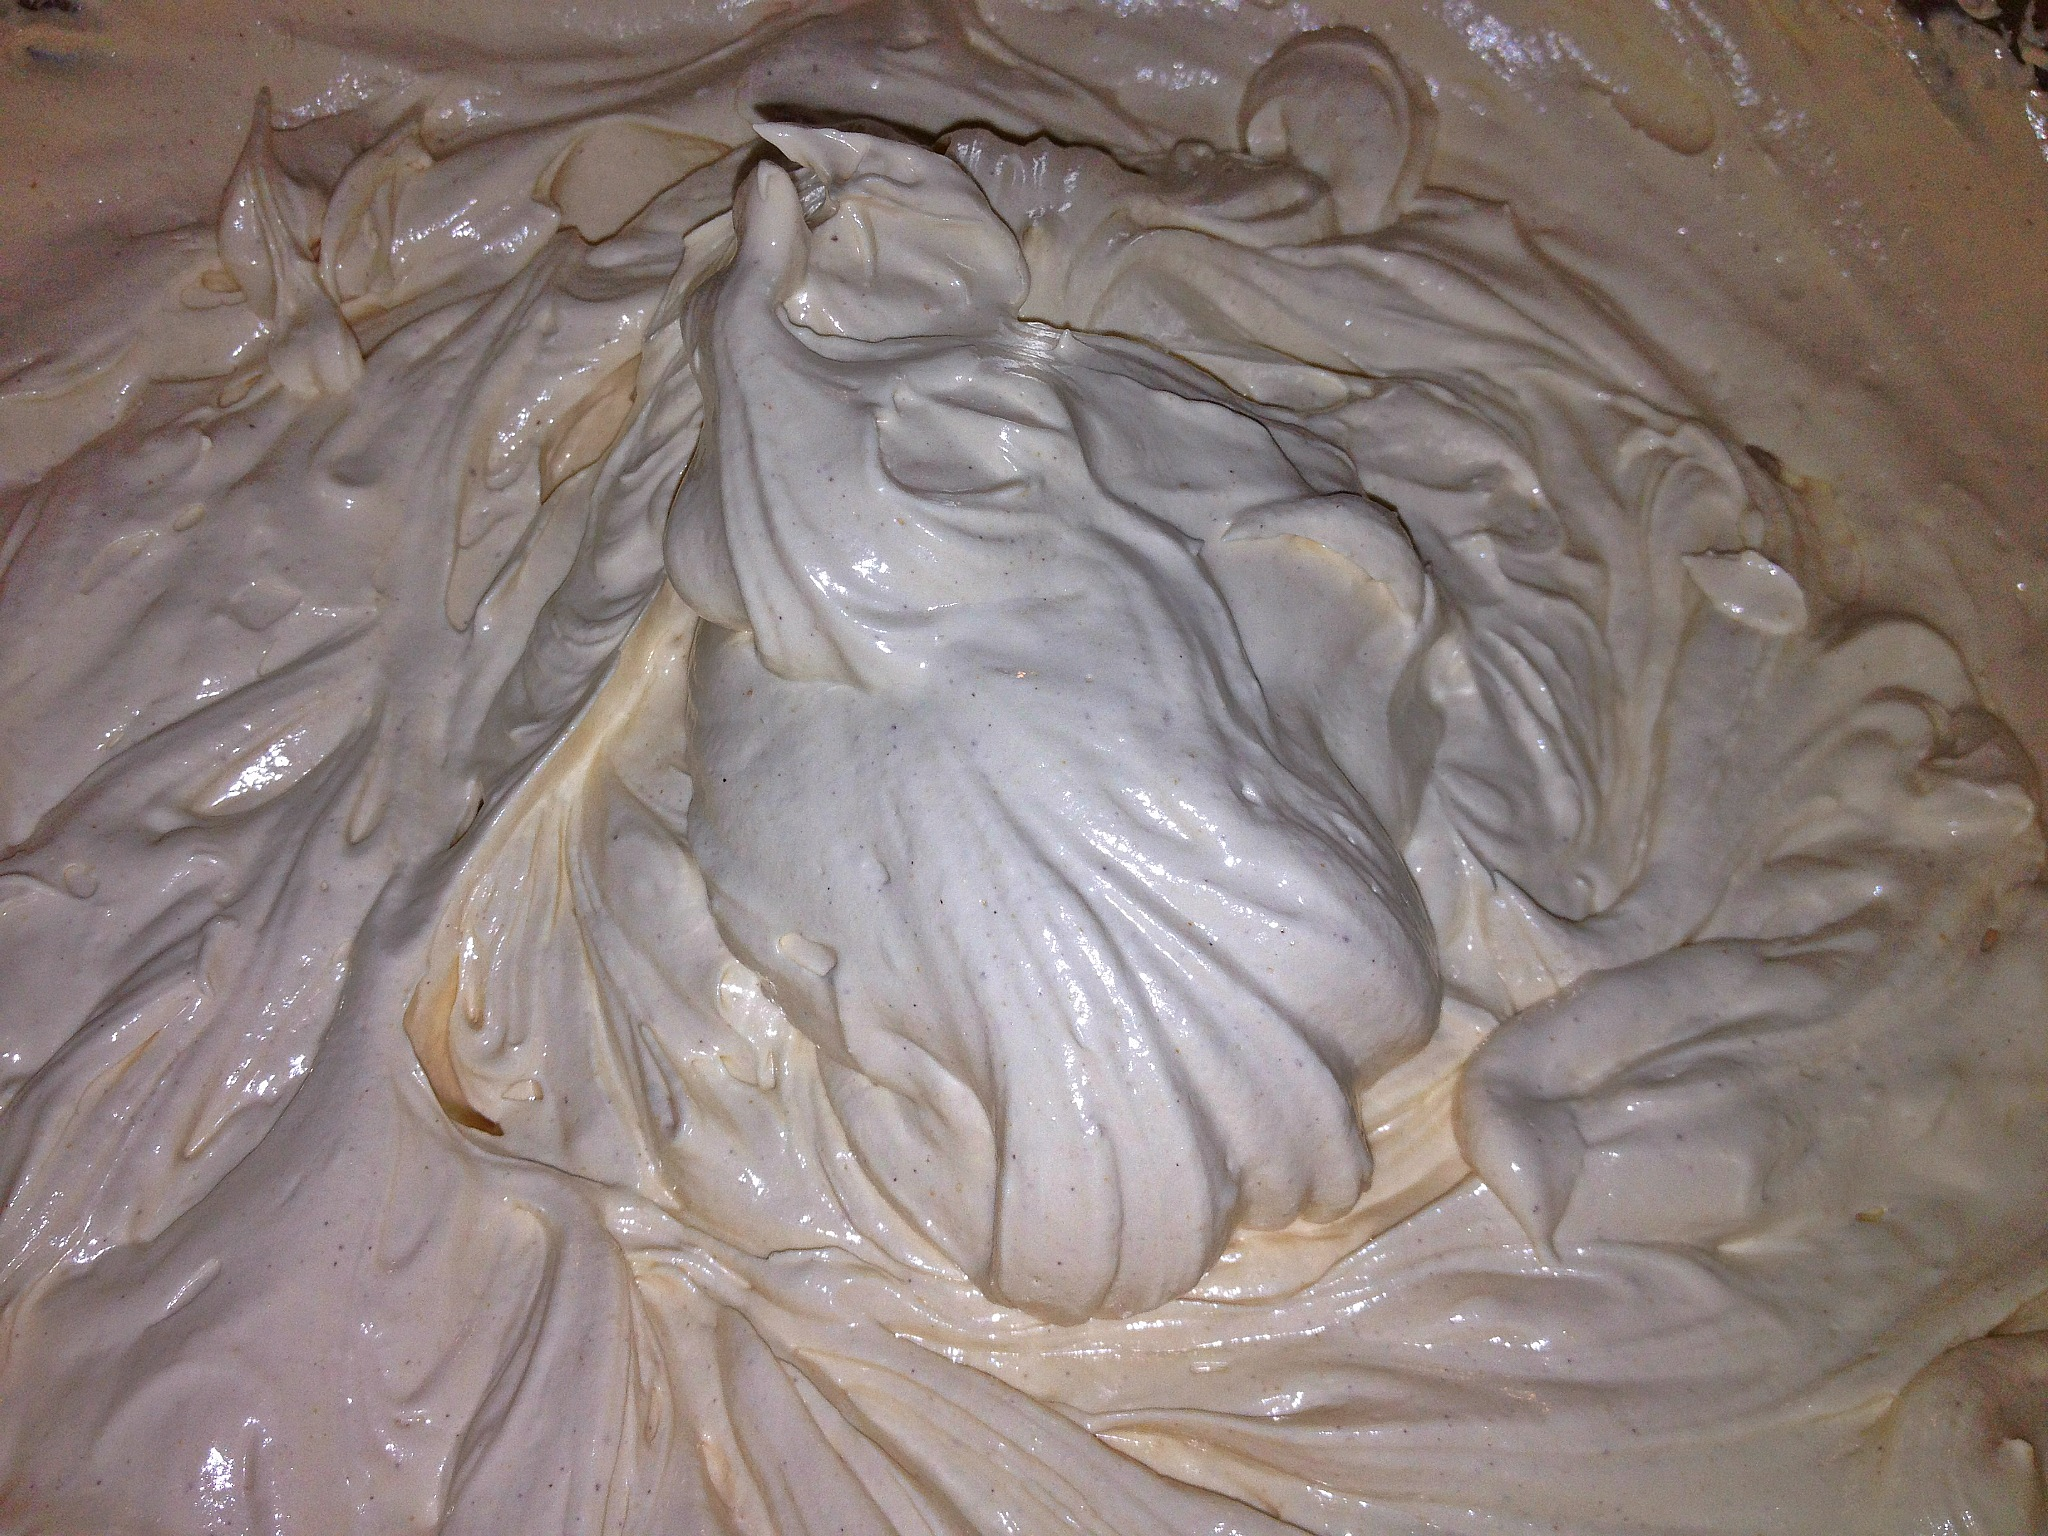 Peanut Butter Swiss Meringue Buttercream Frosting | Le Food Snob